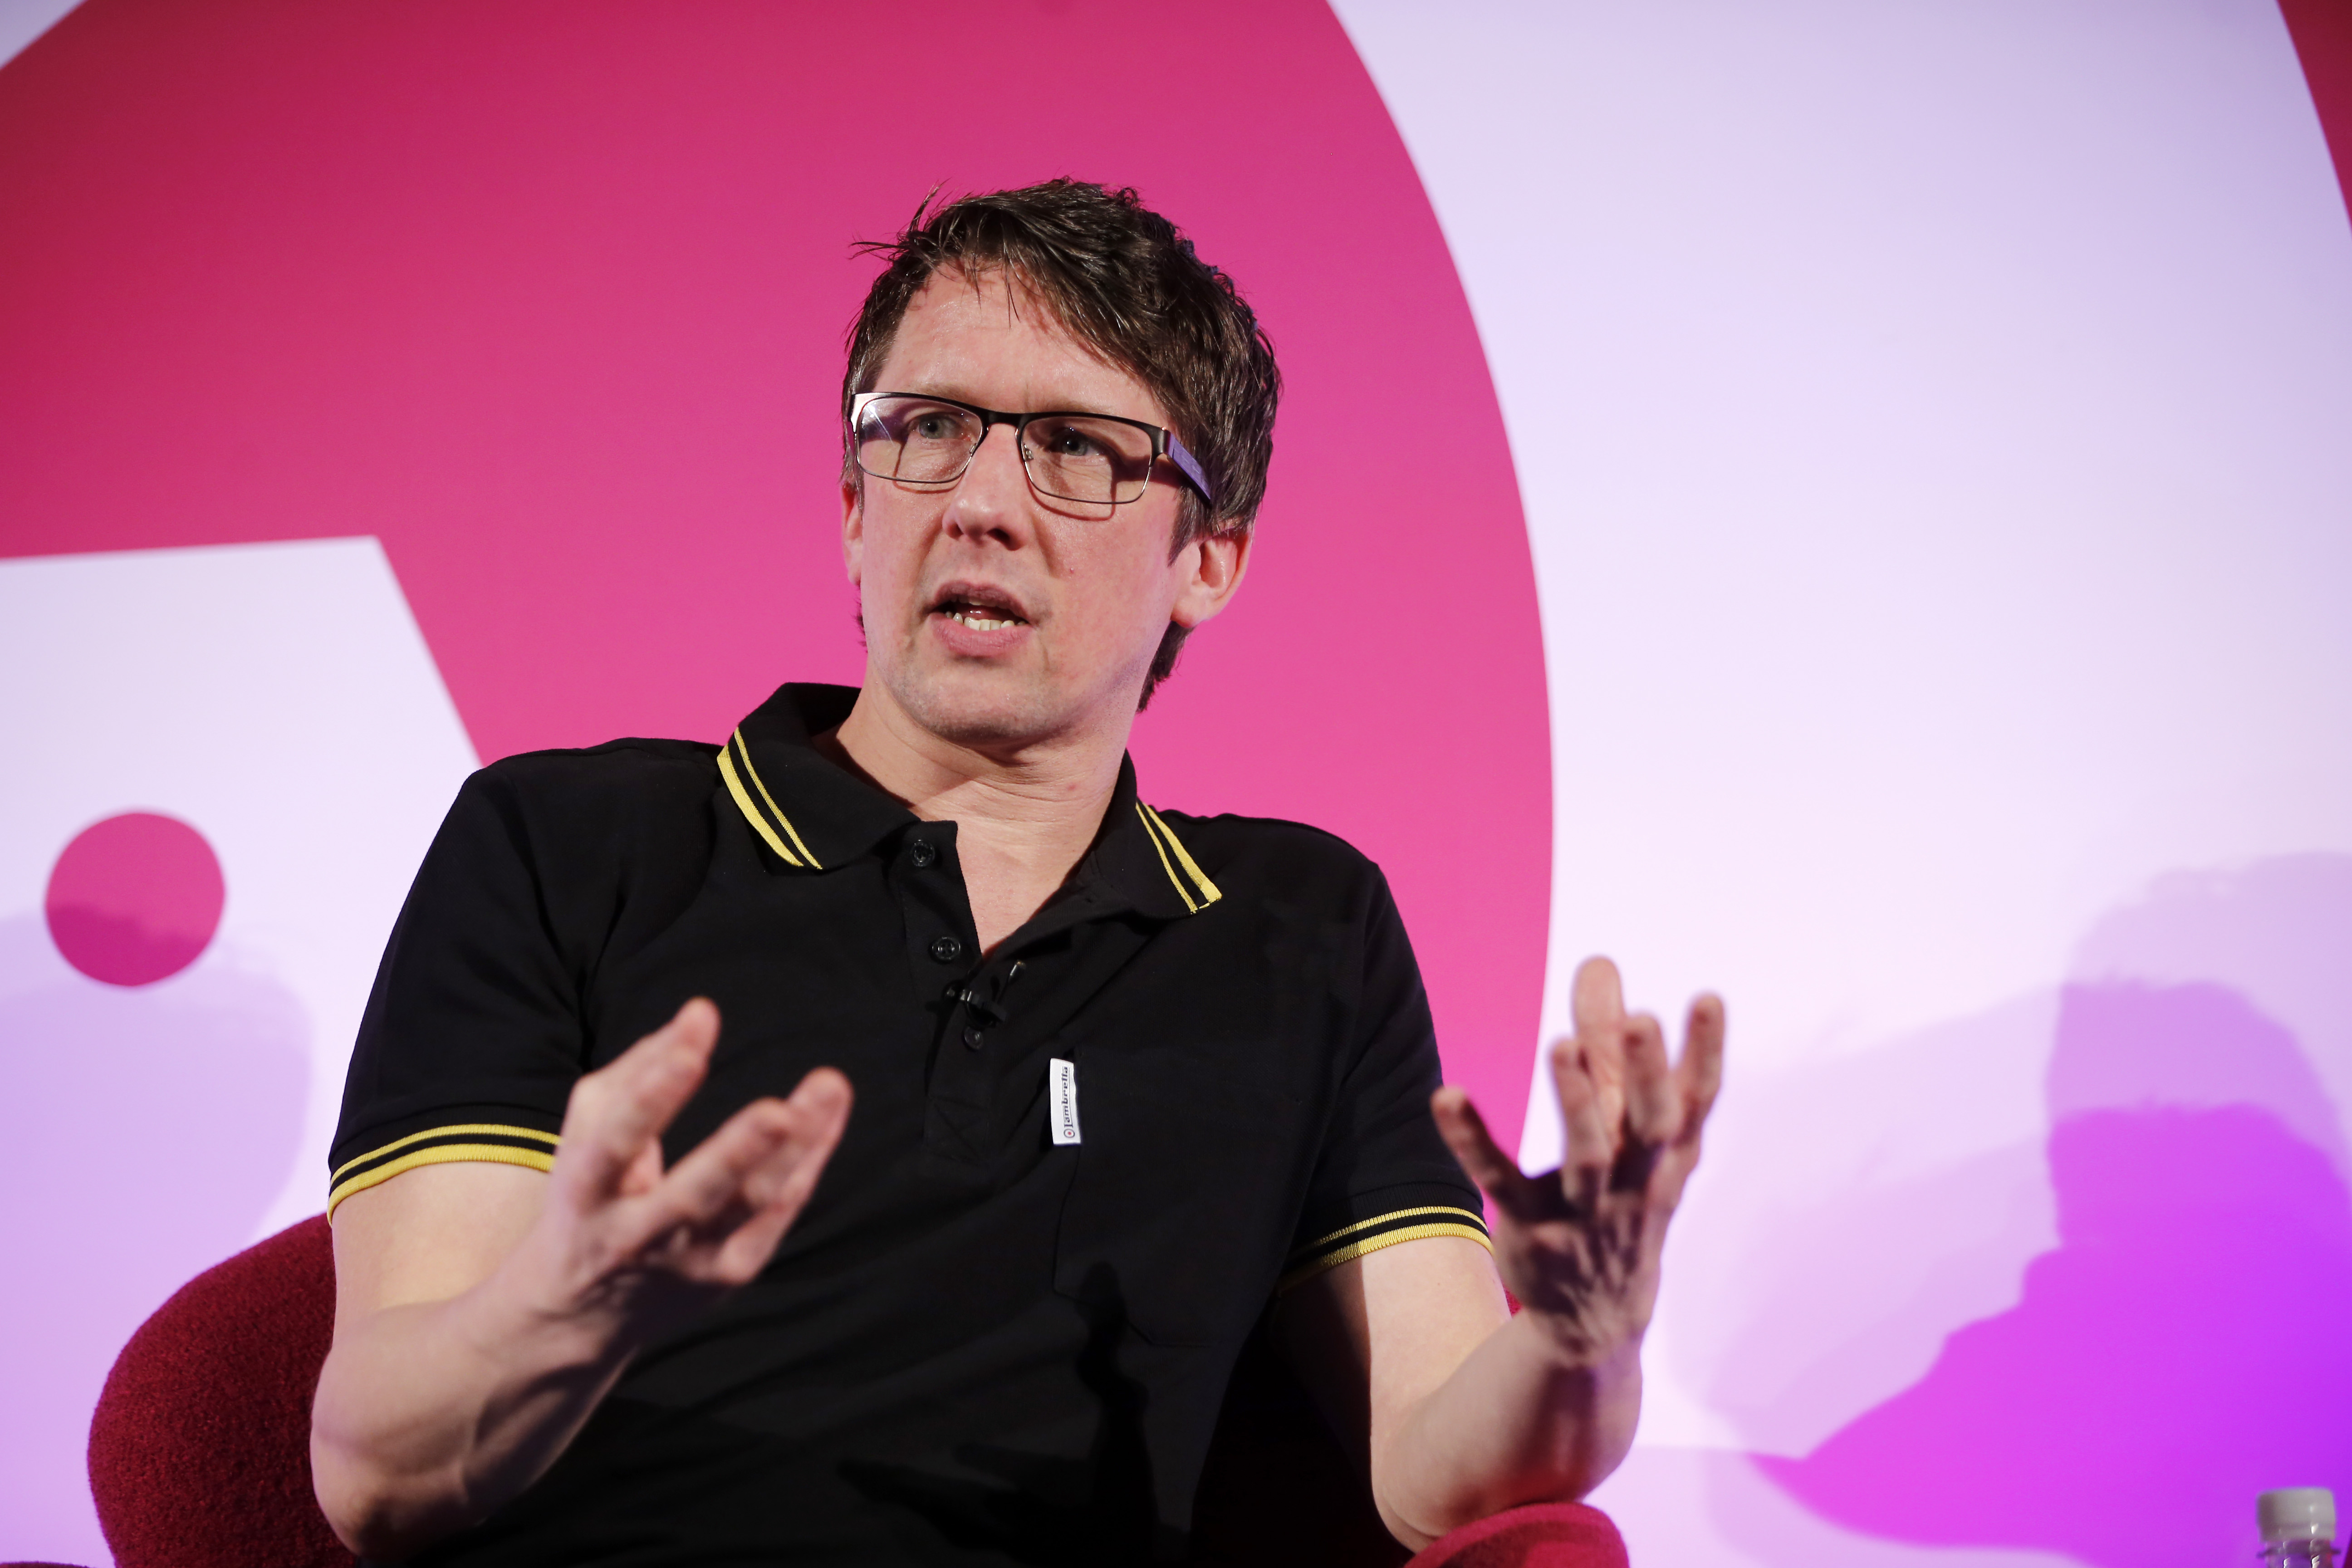 When Satire Met Social: Jonathan Pie seminar, Advertising Week Europe 2017, Fast Company Stage, Picturehouse Central, London, UK